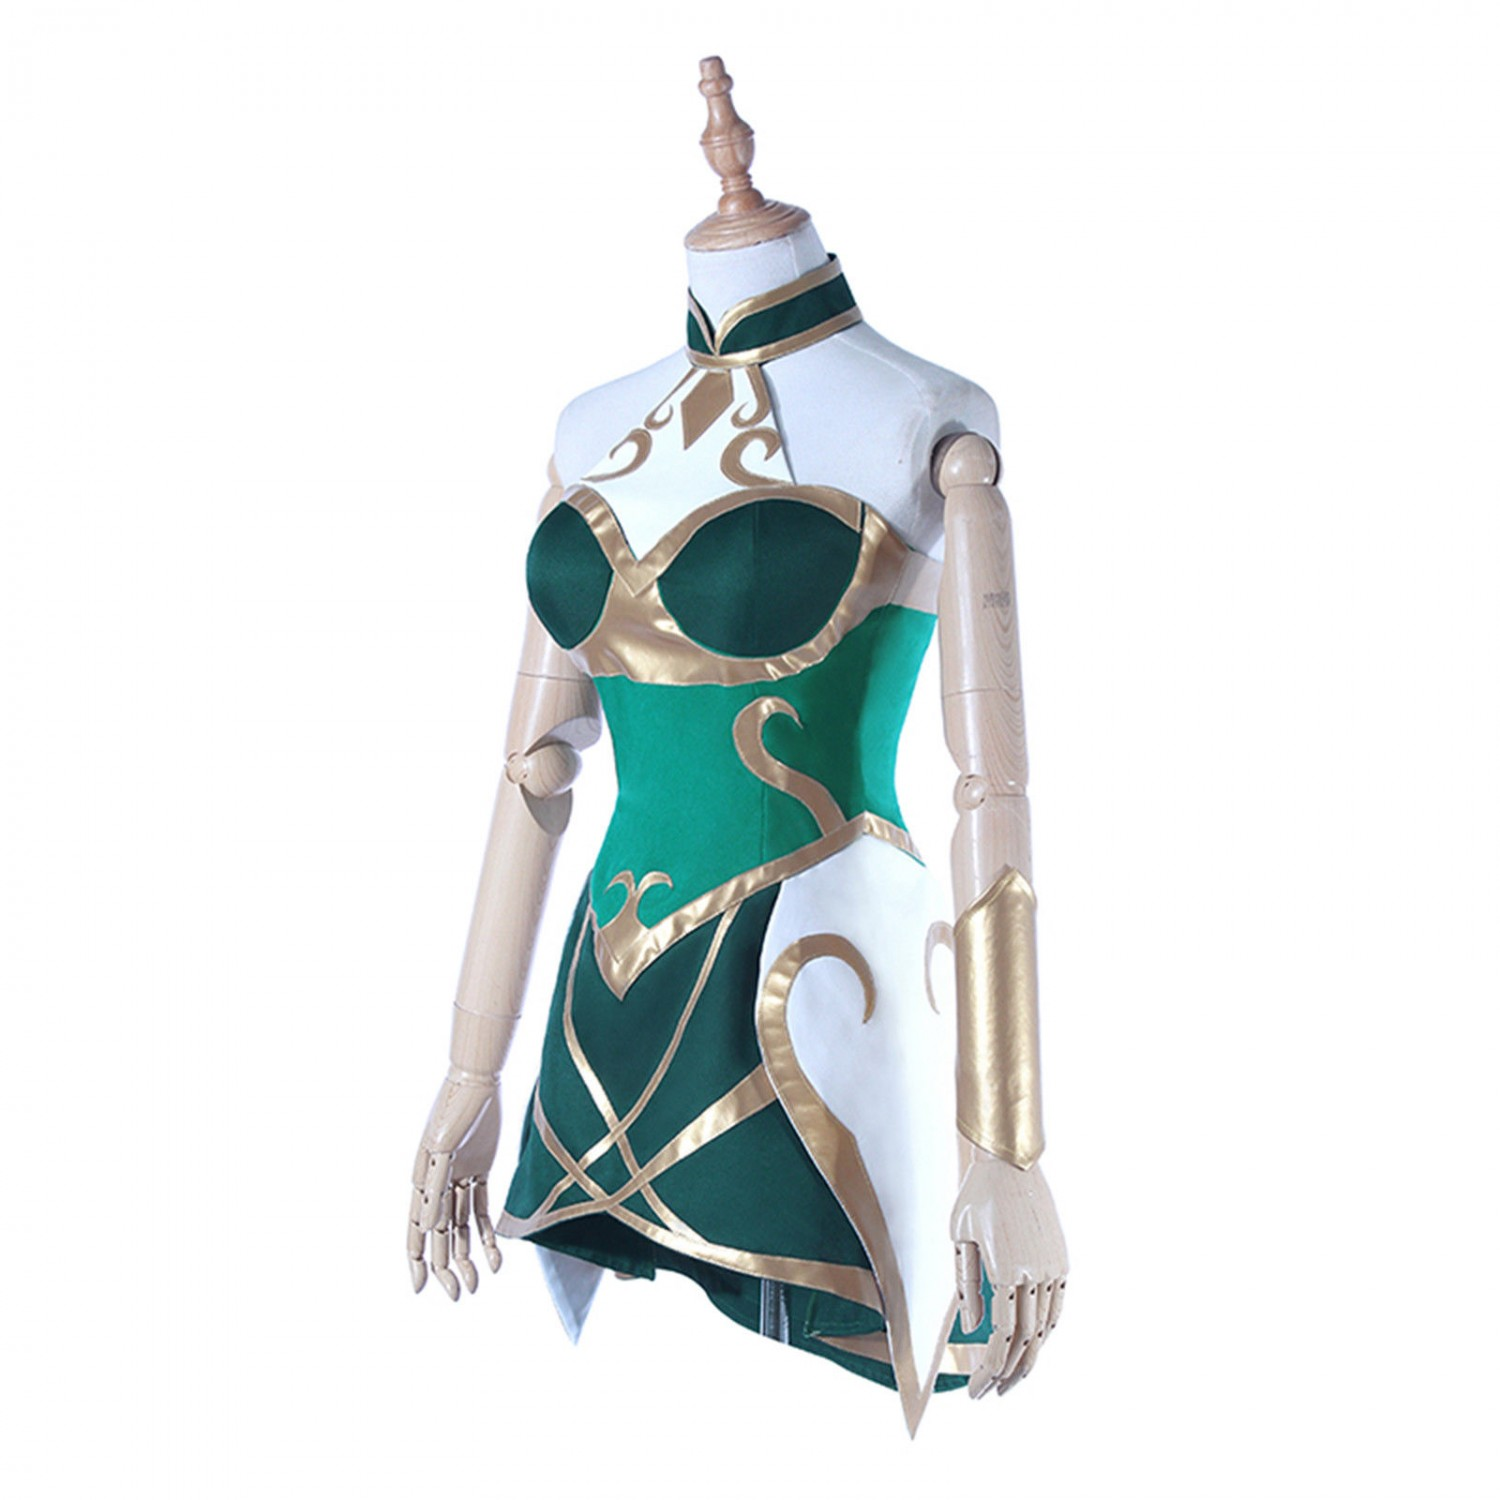 League of Legends LOL Lux c9 Sneaky Dress Cosplay Costume